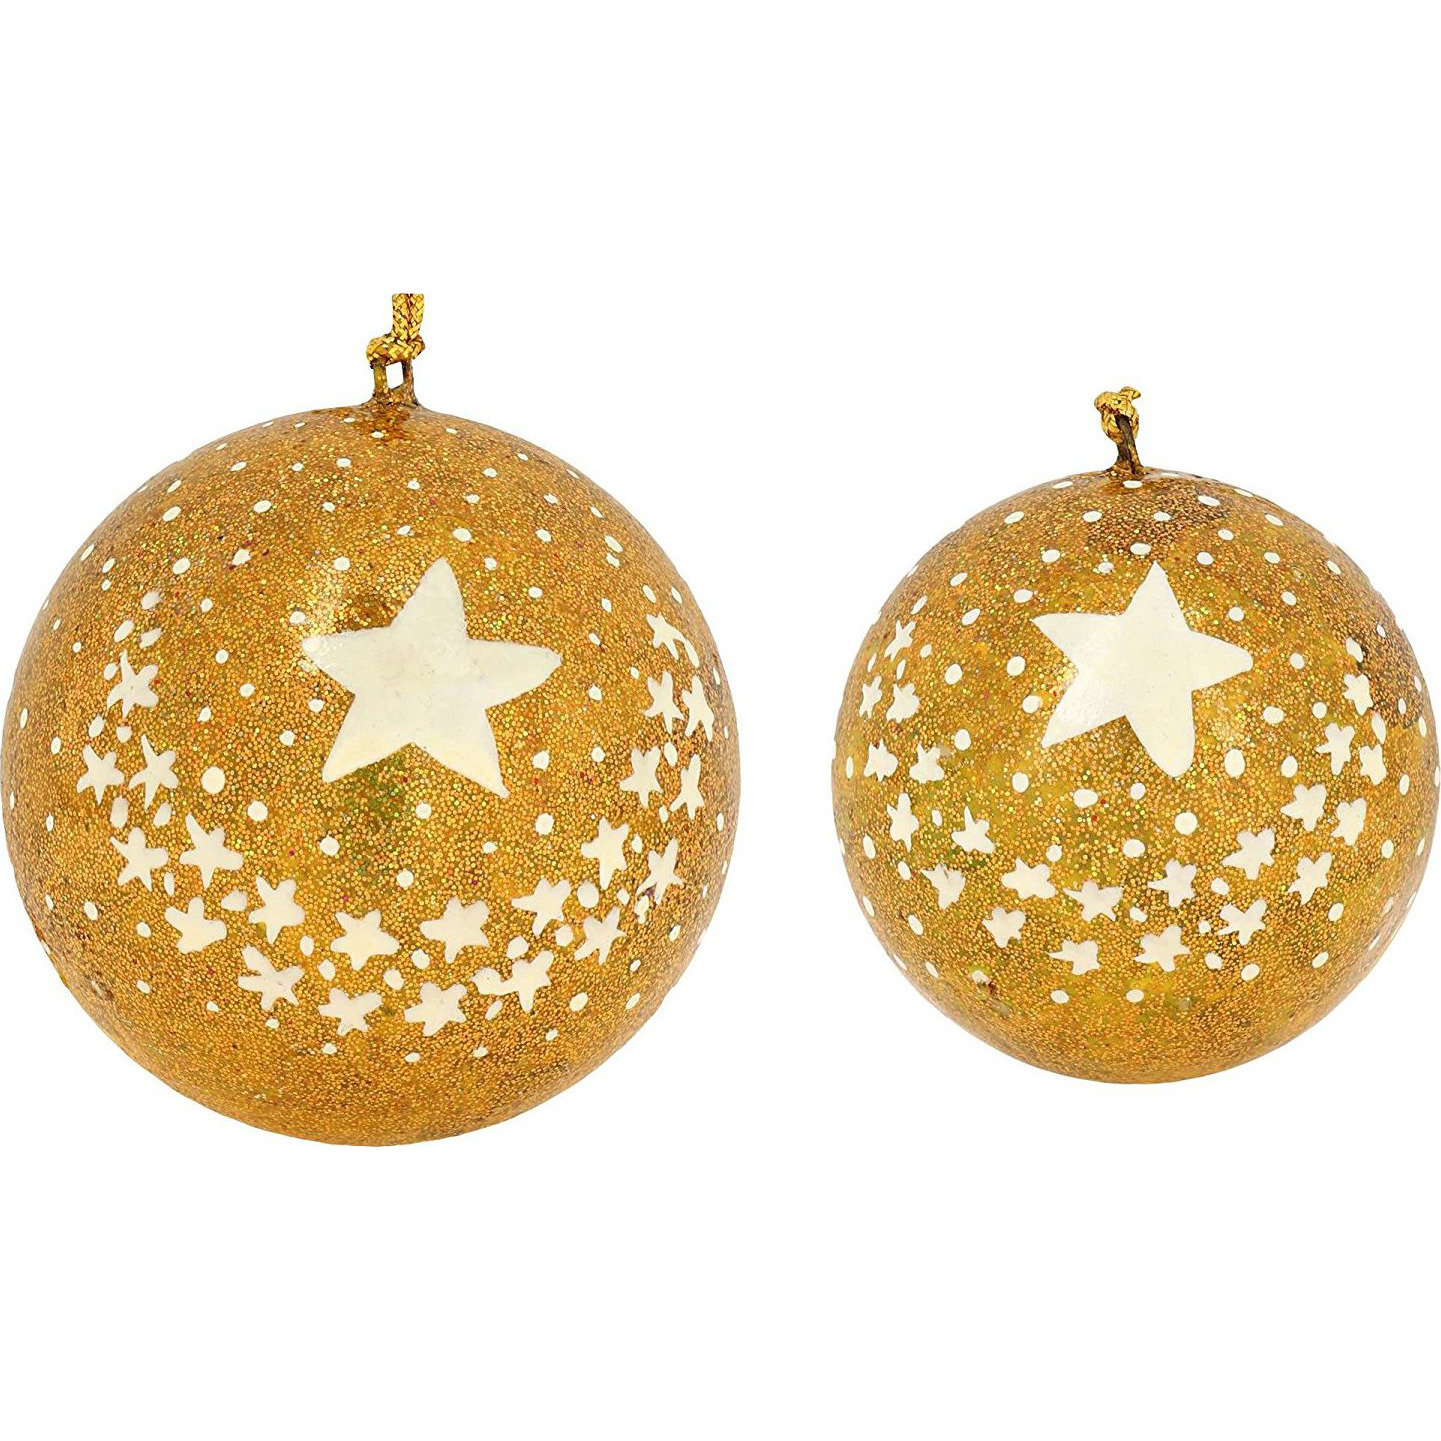 Set of 11 Gold Star Paper Mache Decorative Christmas Ornaments - Handmade Xmas Decor: Home & Kitchen